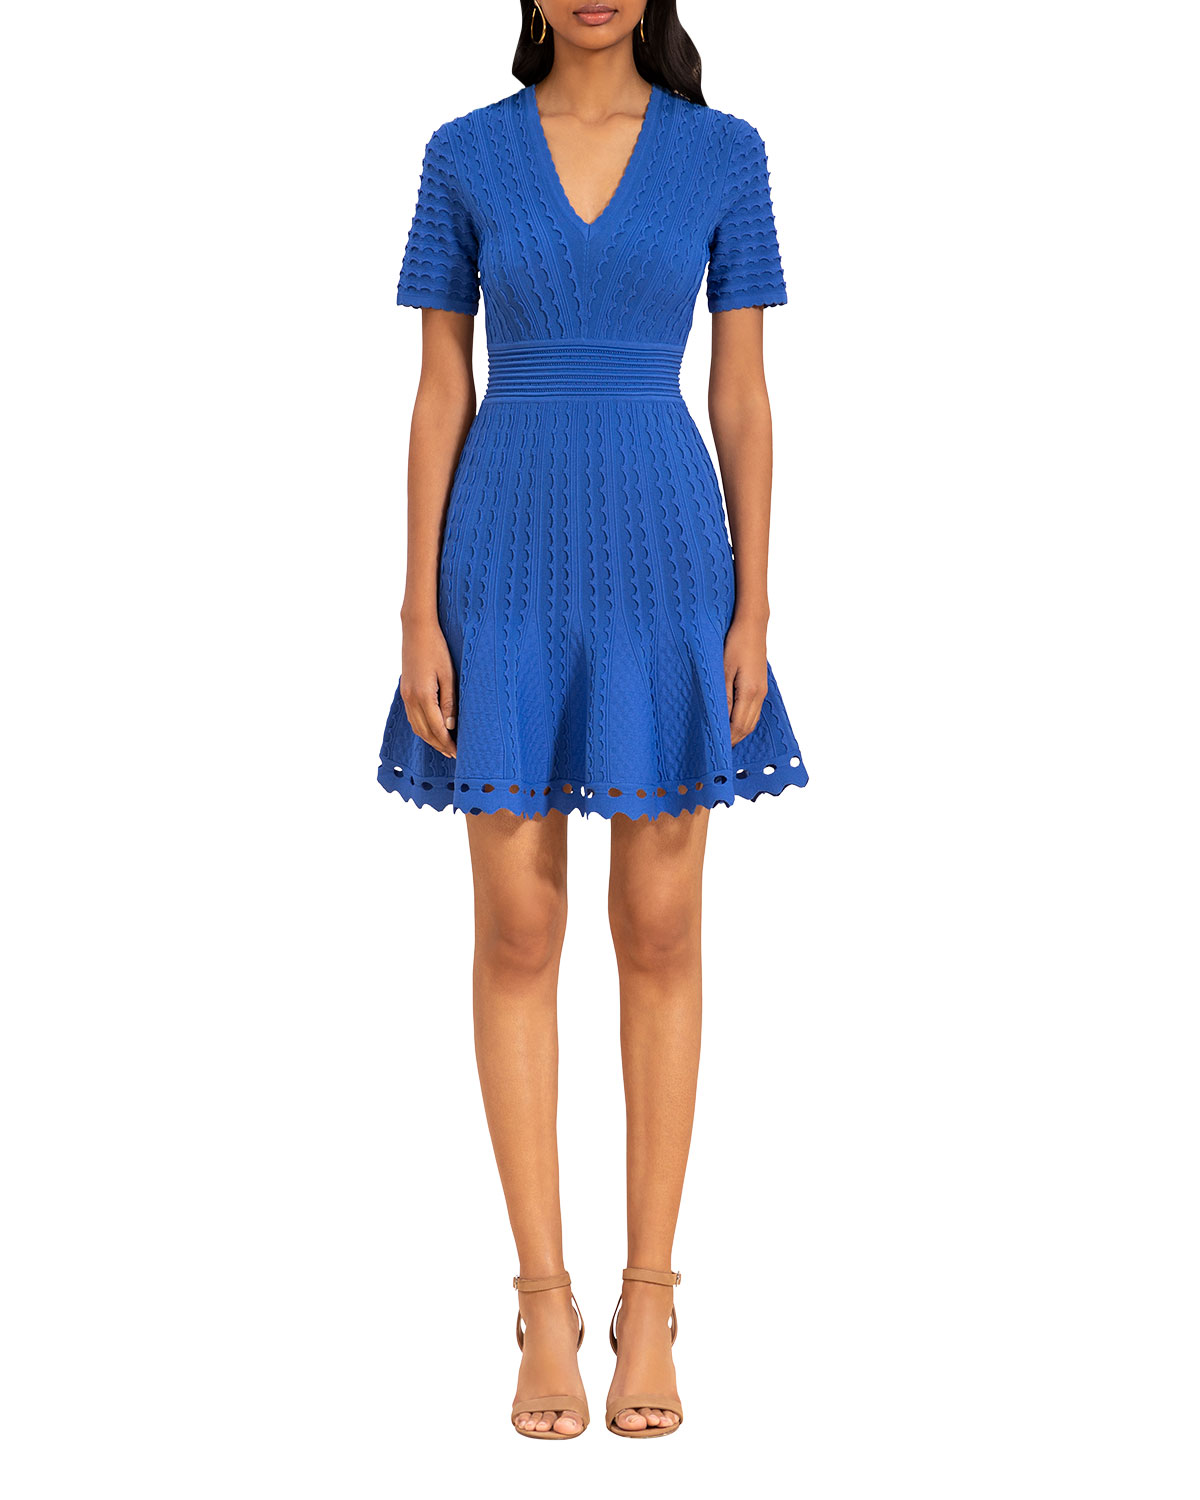 Shoshanna Janice Scallop Textured Dress